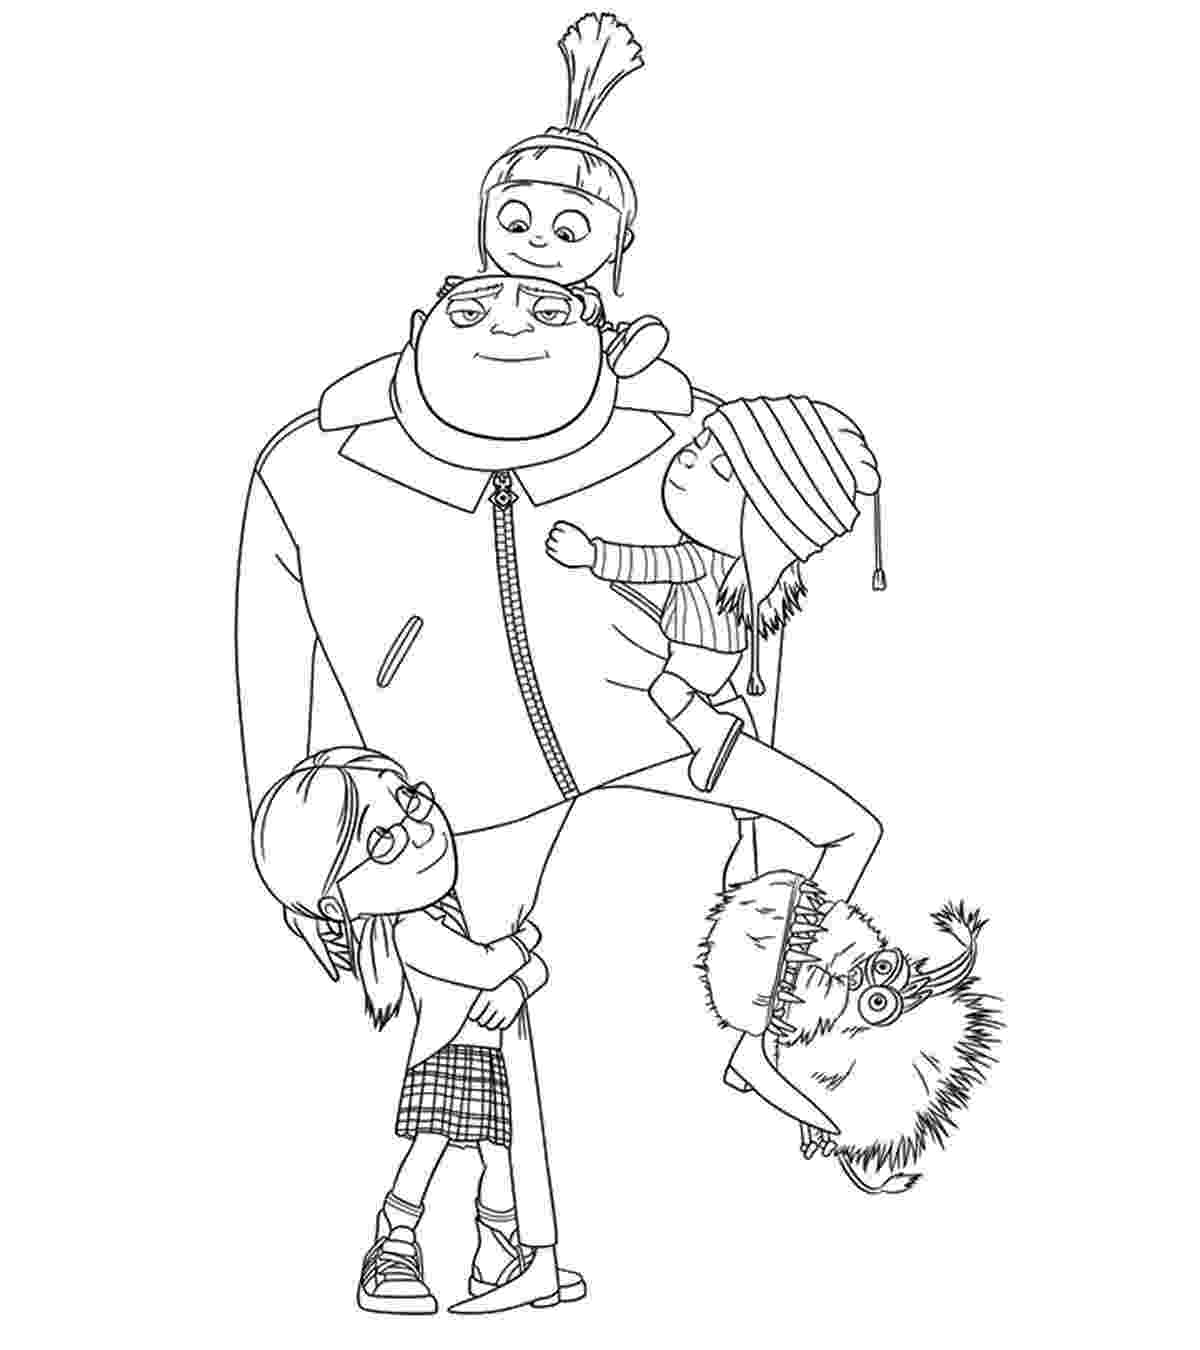 despicable me coloring pages free free coloring pages for kids find free coloring pages me free coloring despicable pages